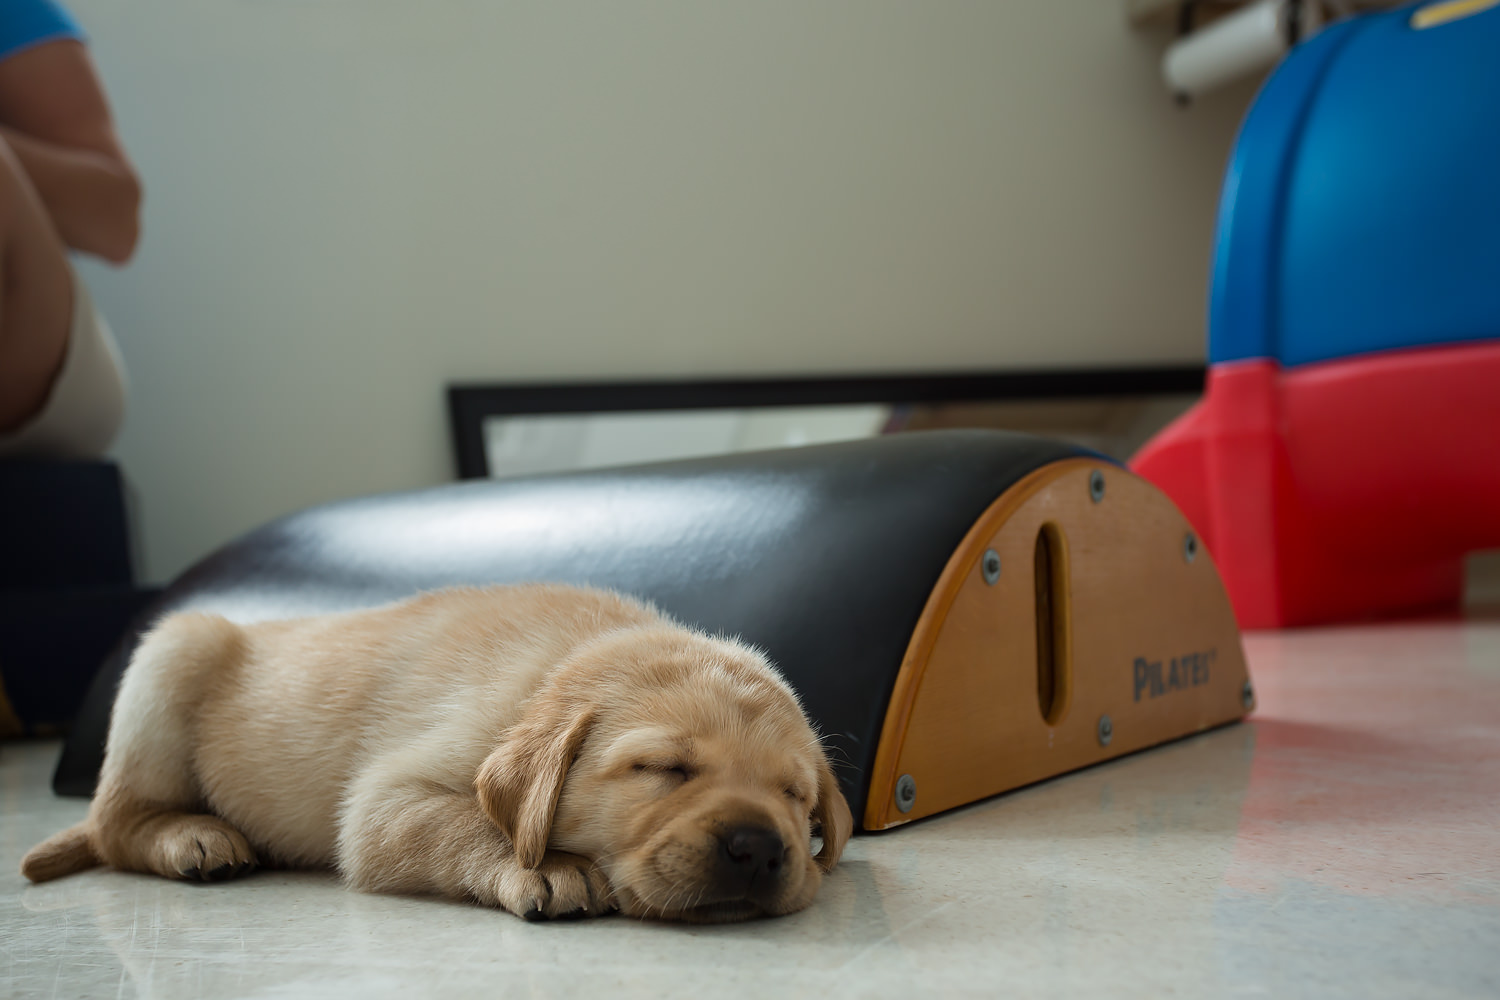 Guiding Eyes pup sleeps on the floor in the socialization room.